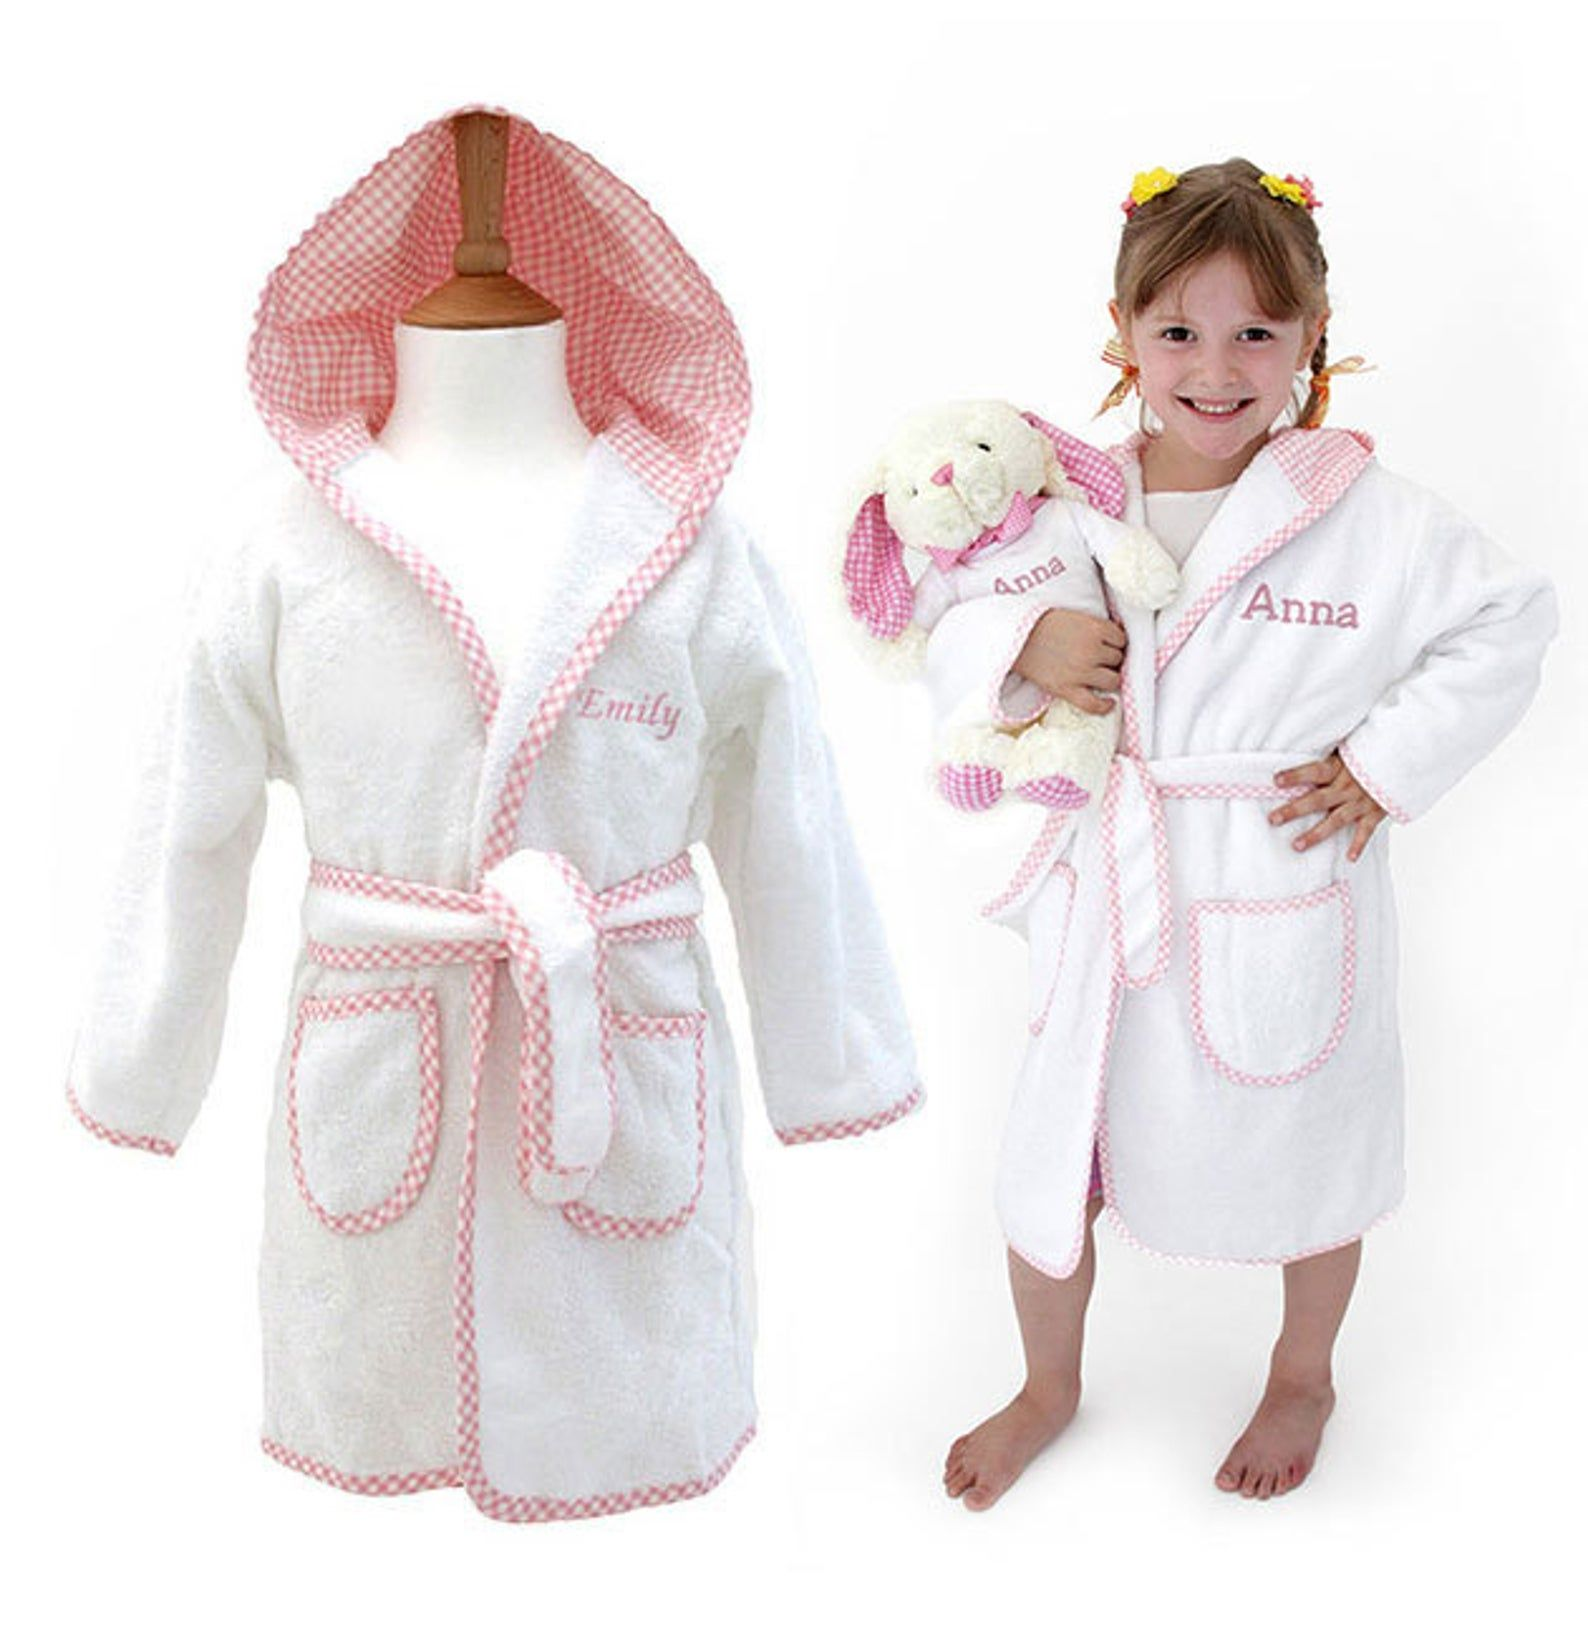 Personalised Children S Towelling Dressing Gown With Hood Personalized Kids Robes Personalised Dressing Gowns For Girls White Pink In 2020 Kids Robes Towel Dress Personalized Dress